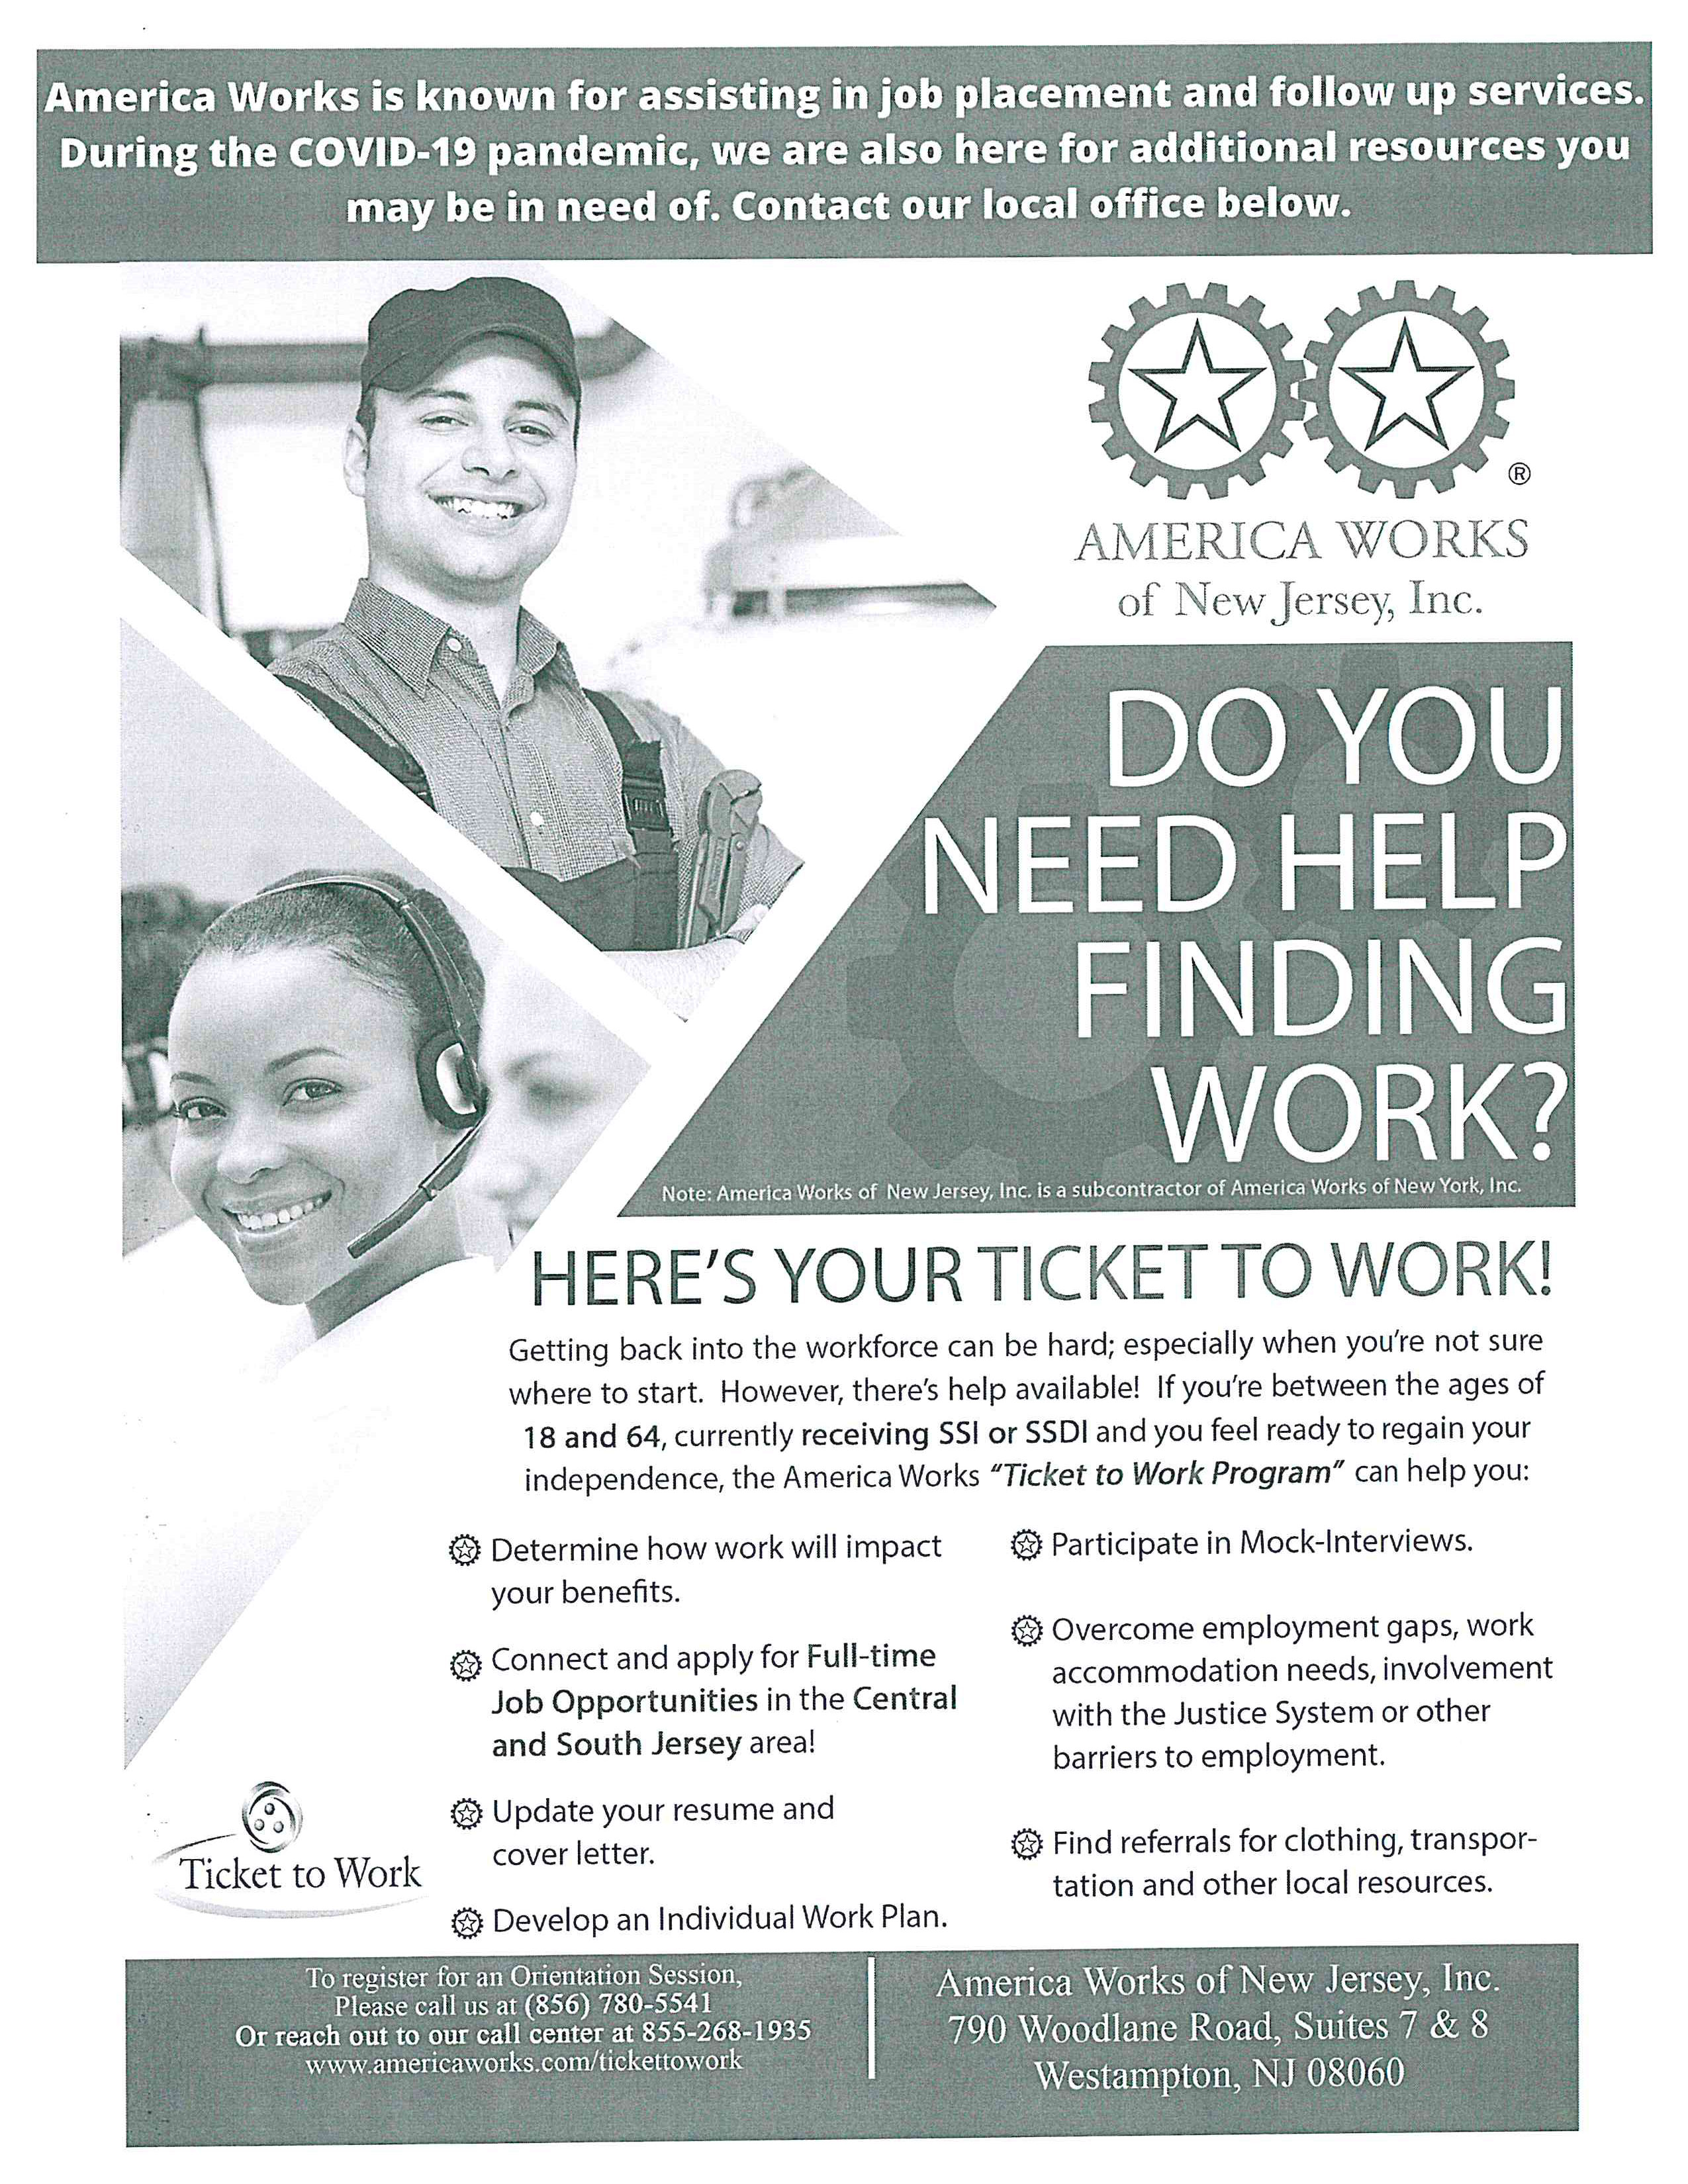 Do you need help finding a job? Contact America Works